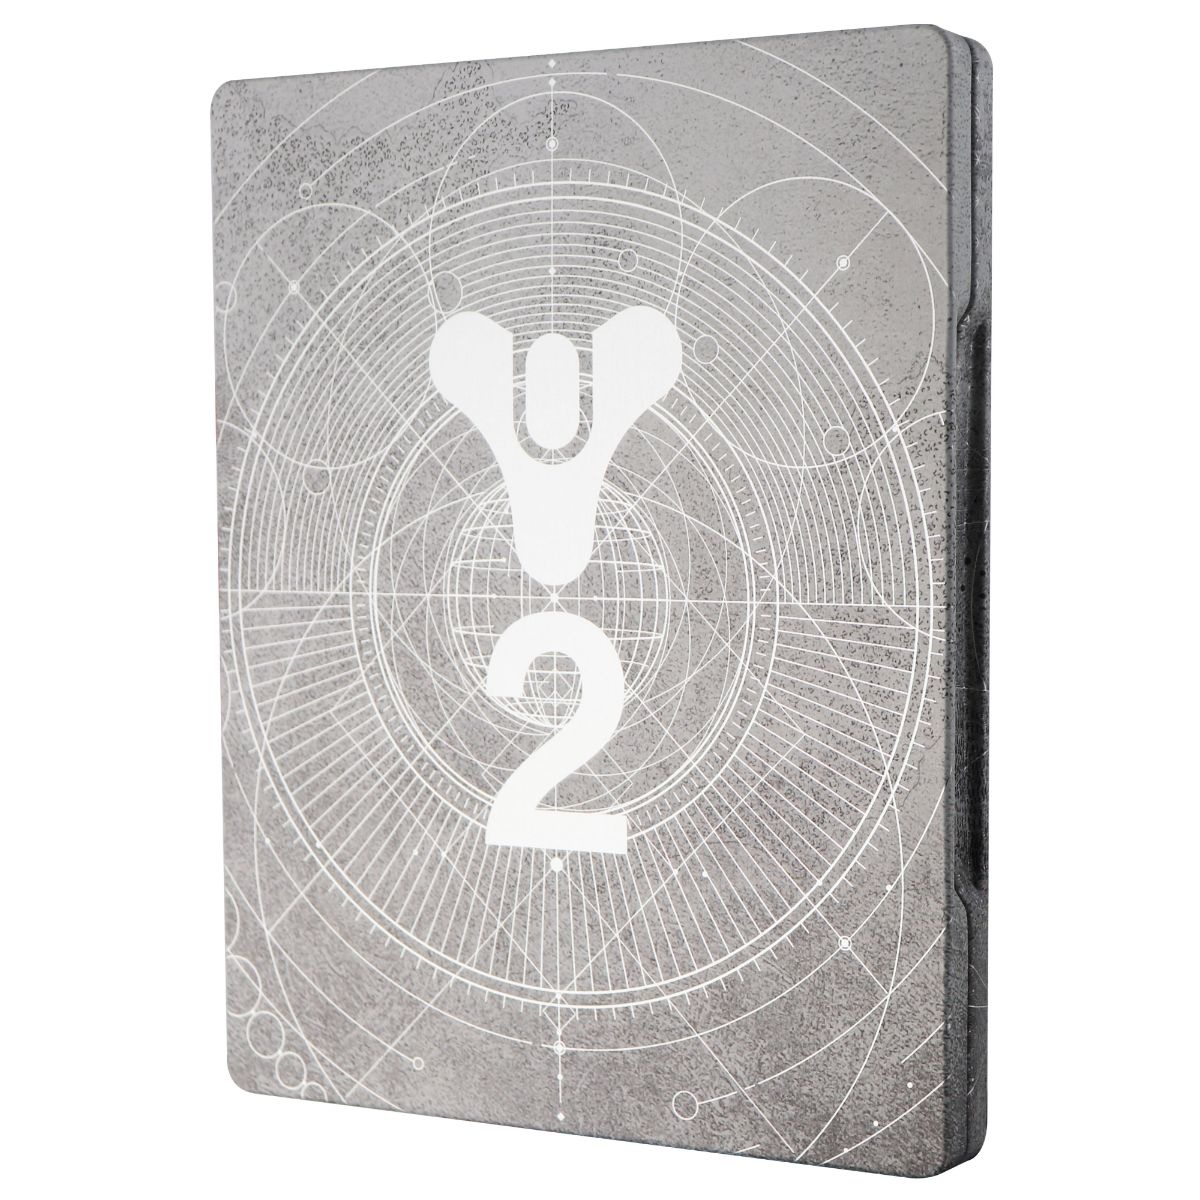 Destiny 2 the Video Game with Steelbook (Single Disk Case) for Playstation 4 PS4